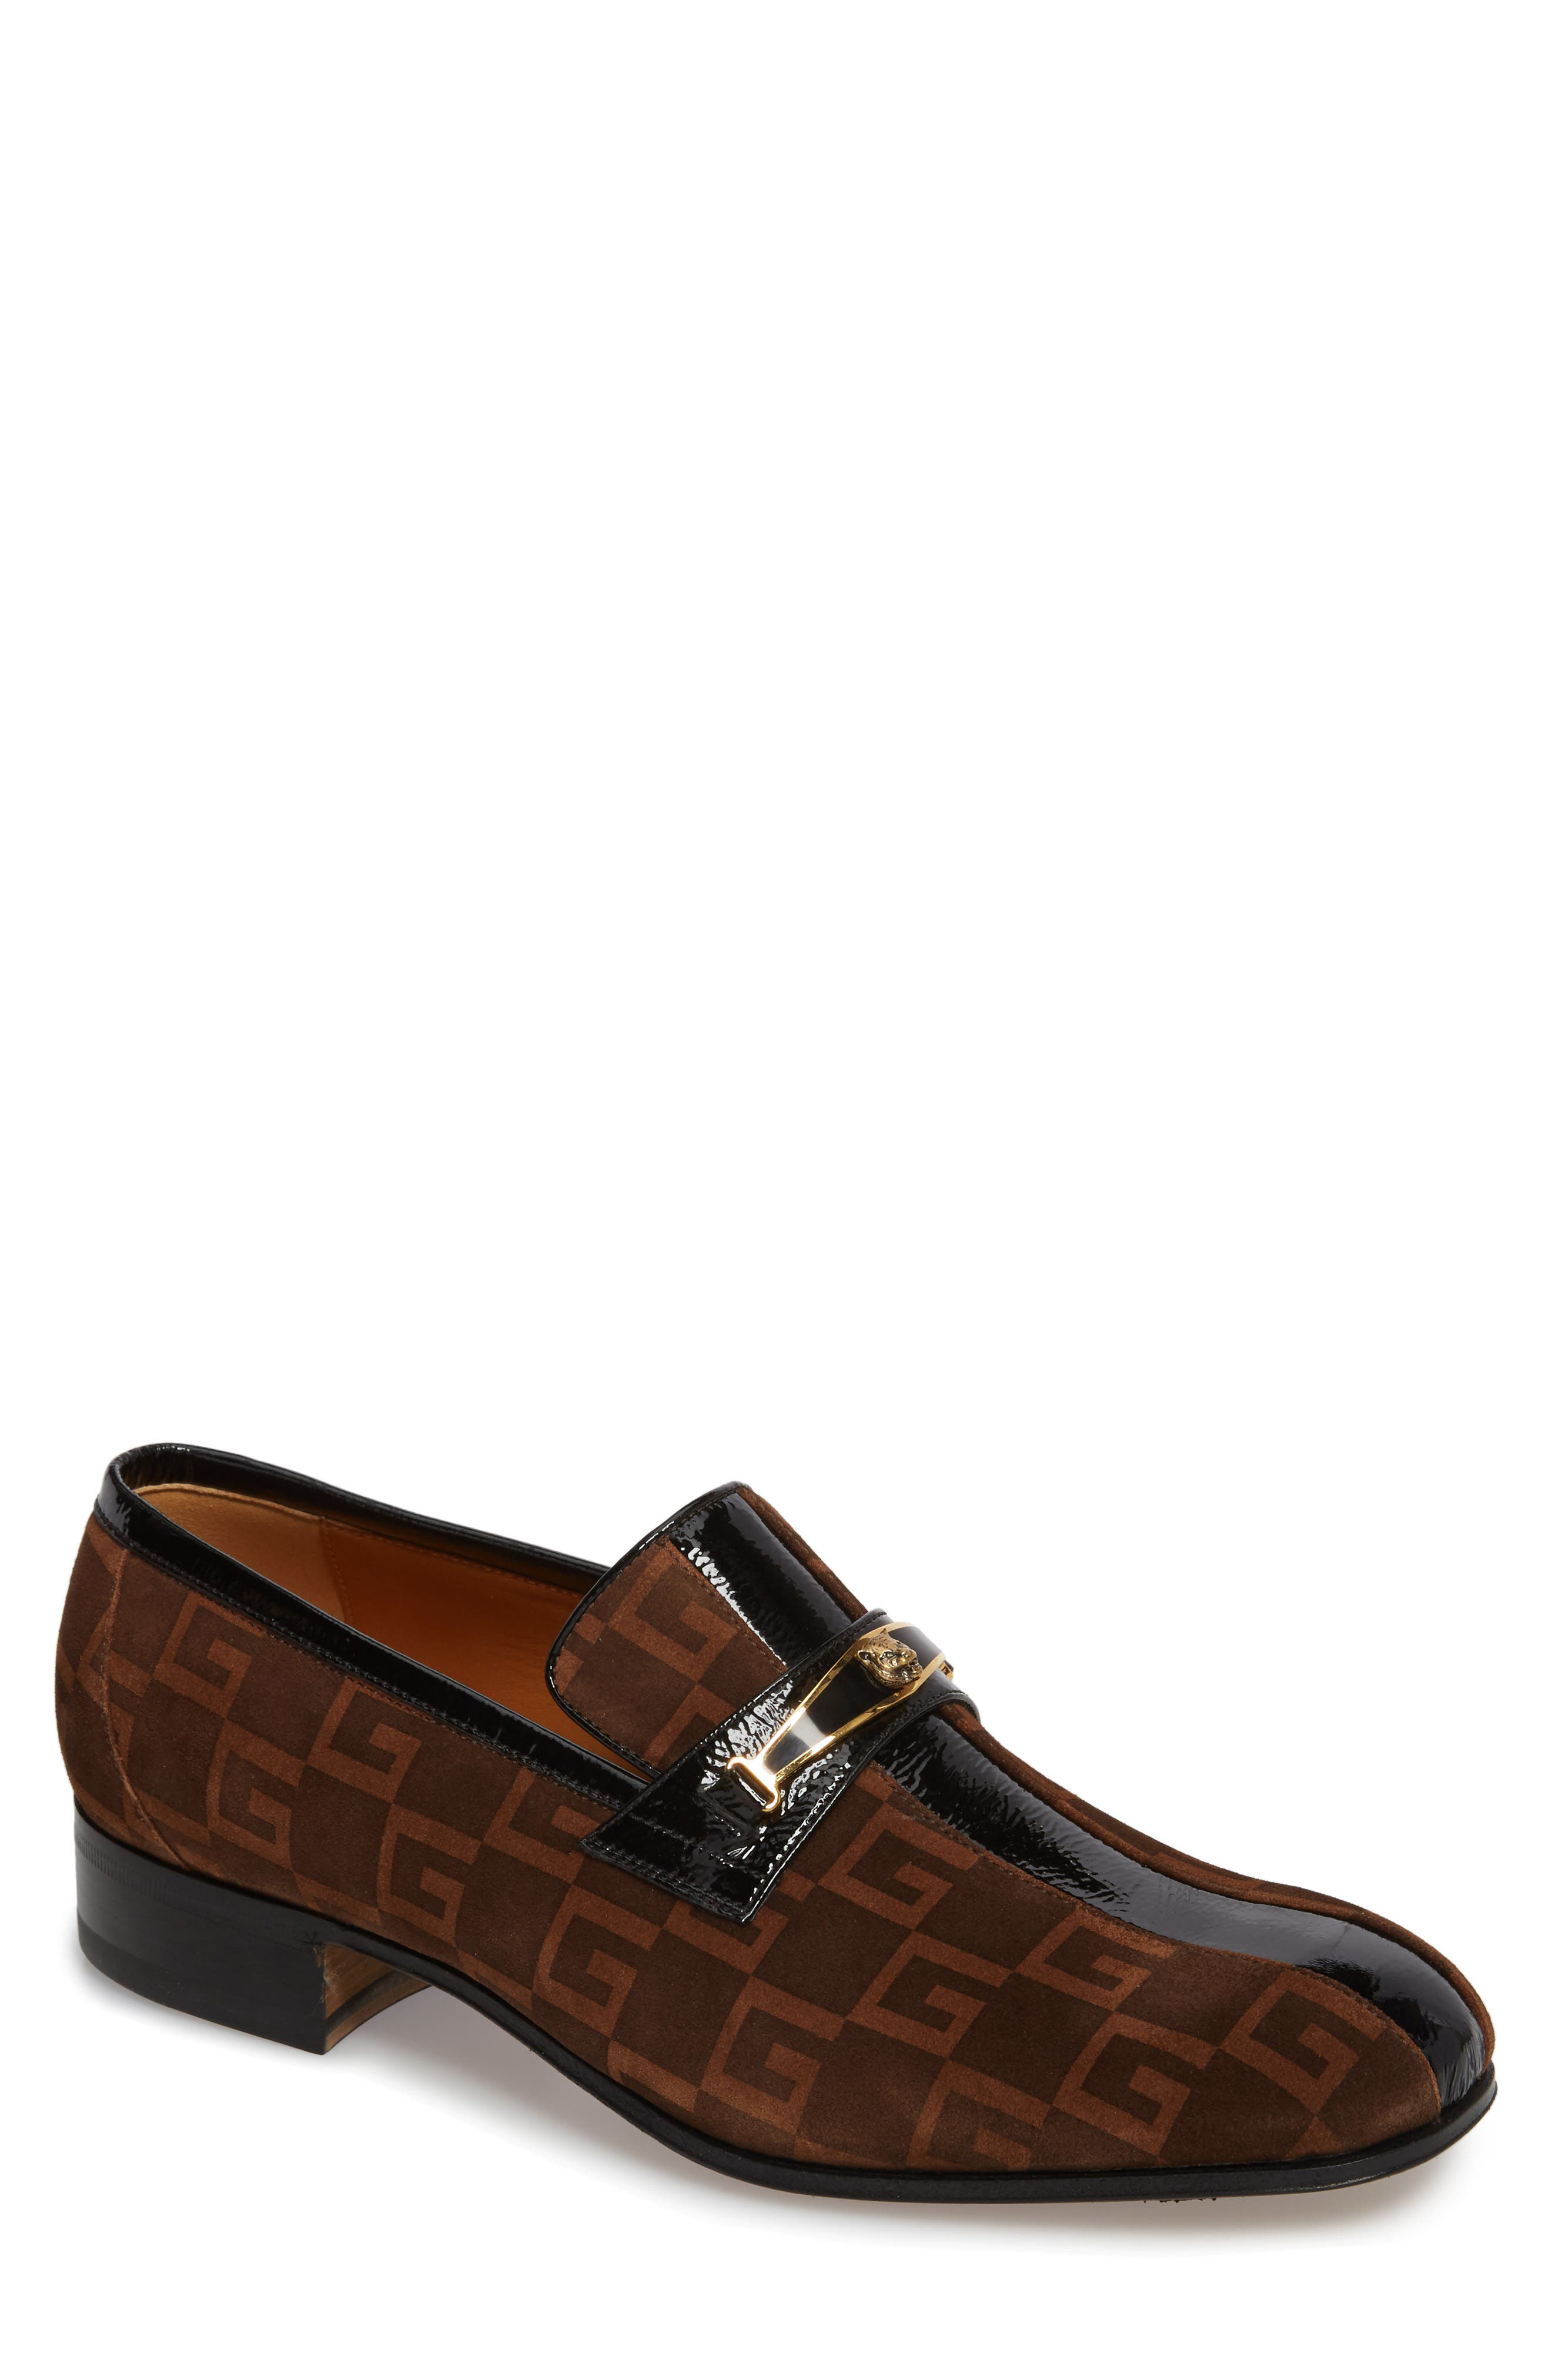 Square-G Loafer,                             Main thumbnail 1, color,                             NERO SIGARO